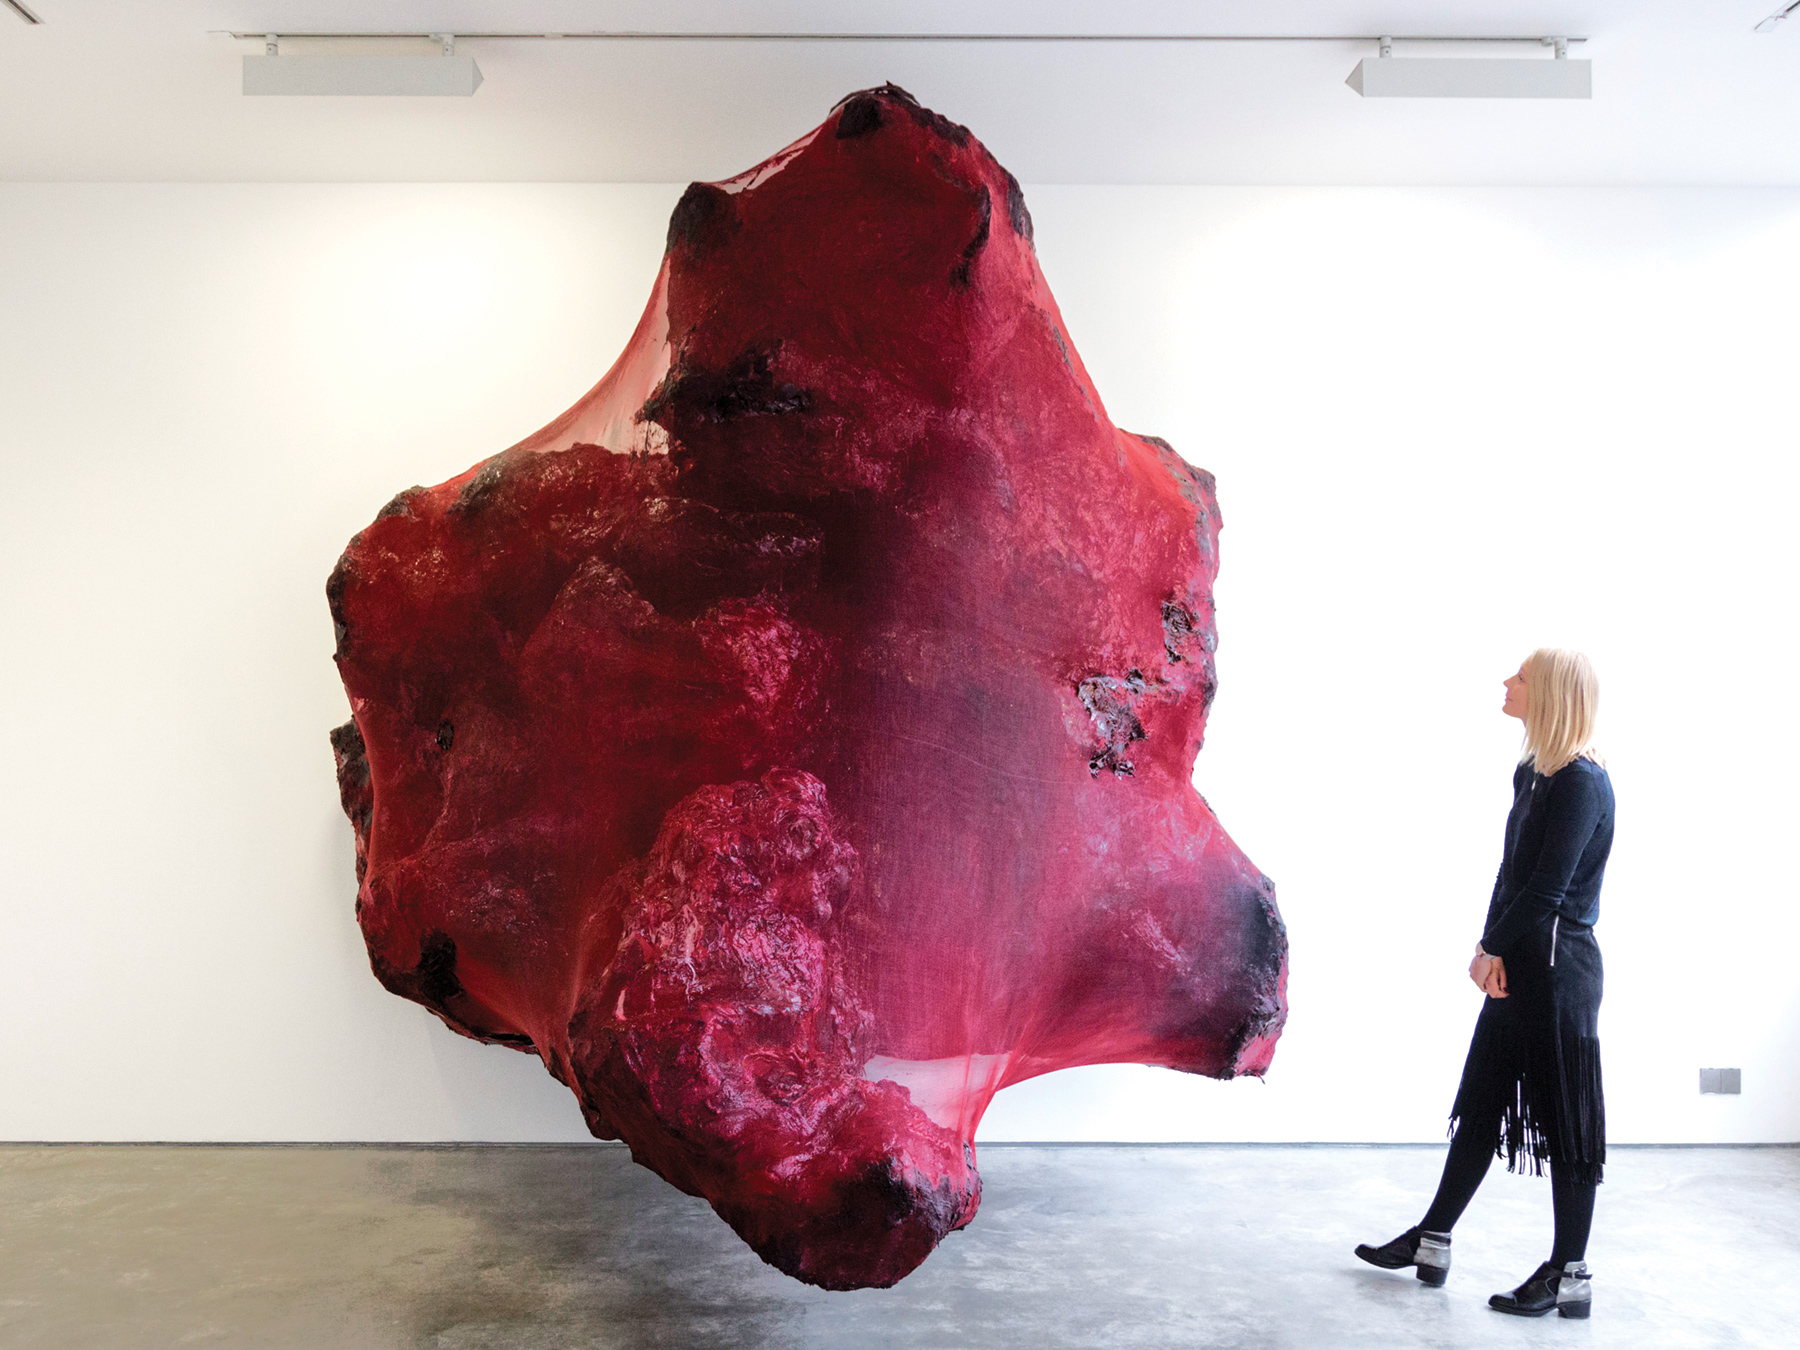 Red Images- in the Red, 2016 Anish Kapoor on view at Lisson Gallery in London, UK